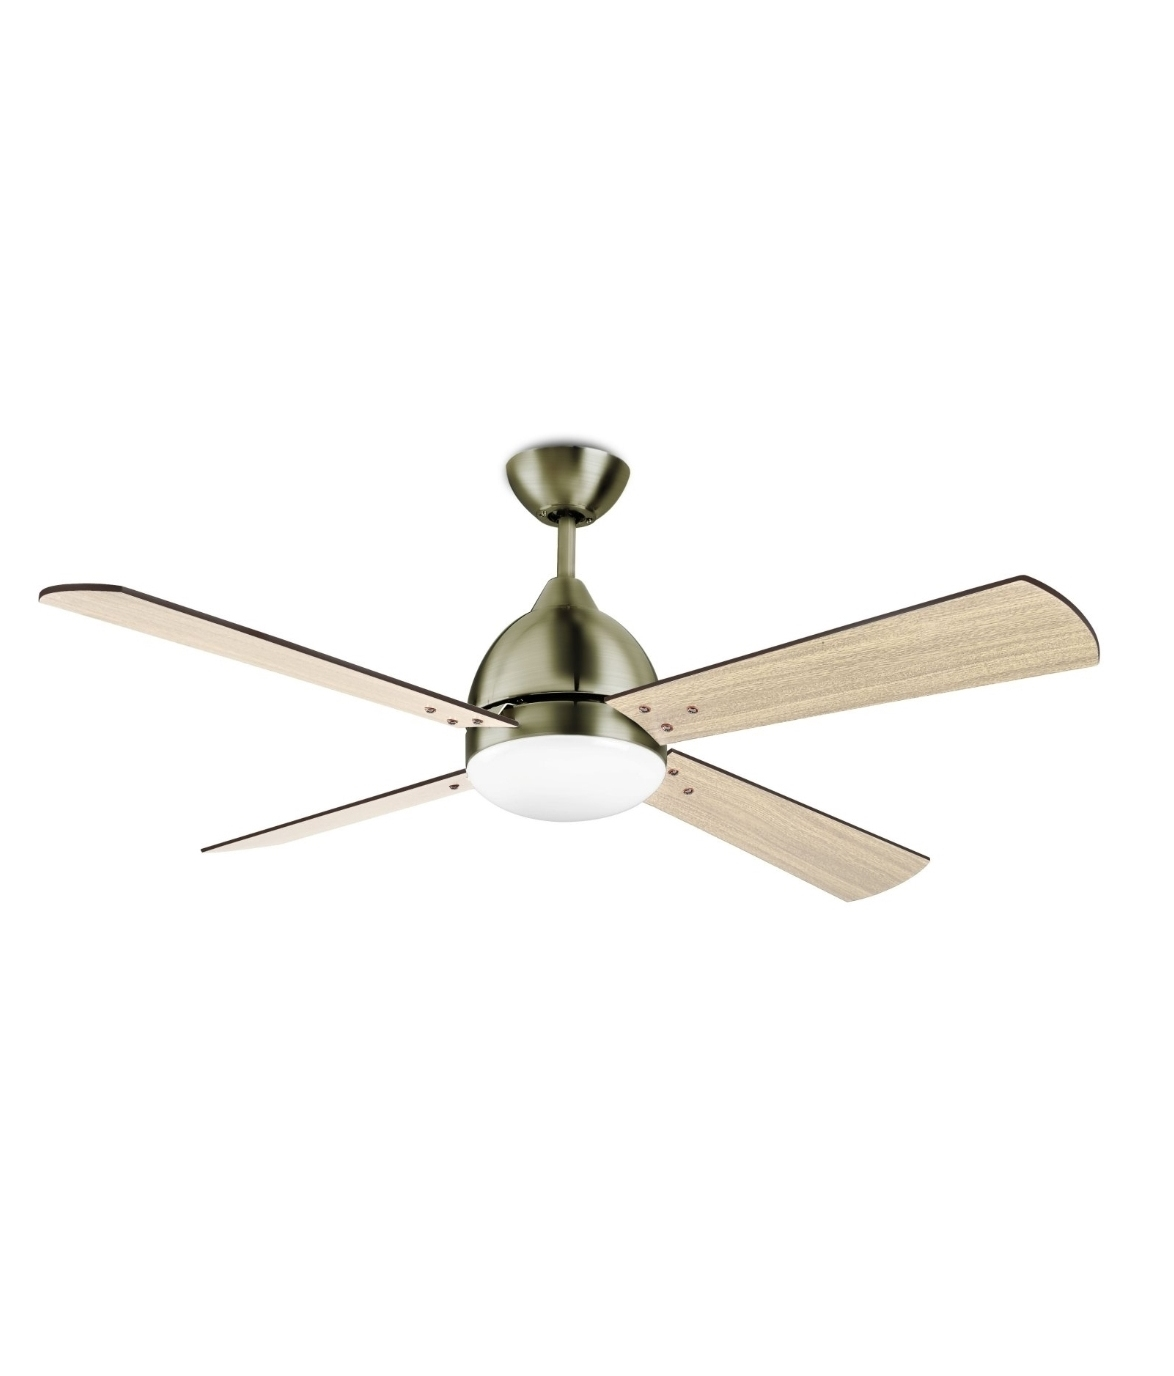 Oversized Ceiling Fans Large Ceiling Fan With Light Dia 1066mm Available In A